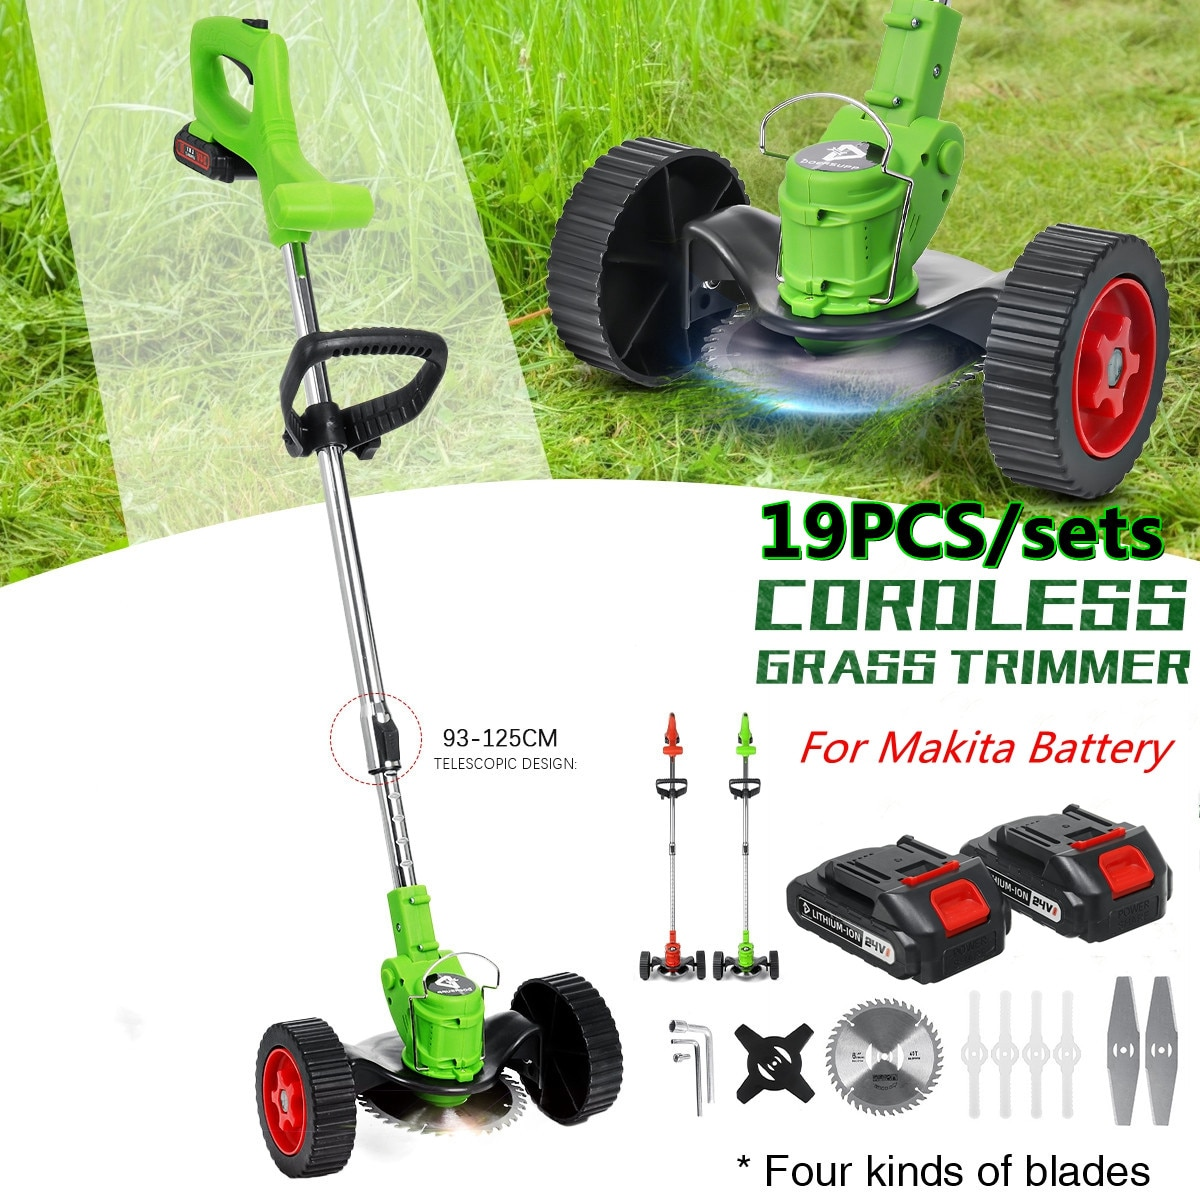 19pcs Electric Grass Trimmer 1800W Garden Lawn Mower Rechargeable Cordless Grass Pruning Tool machine For Makita 2Battery&Wheels